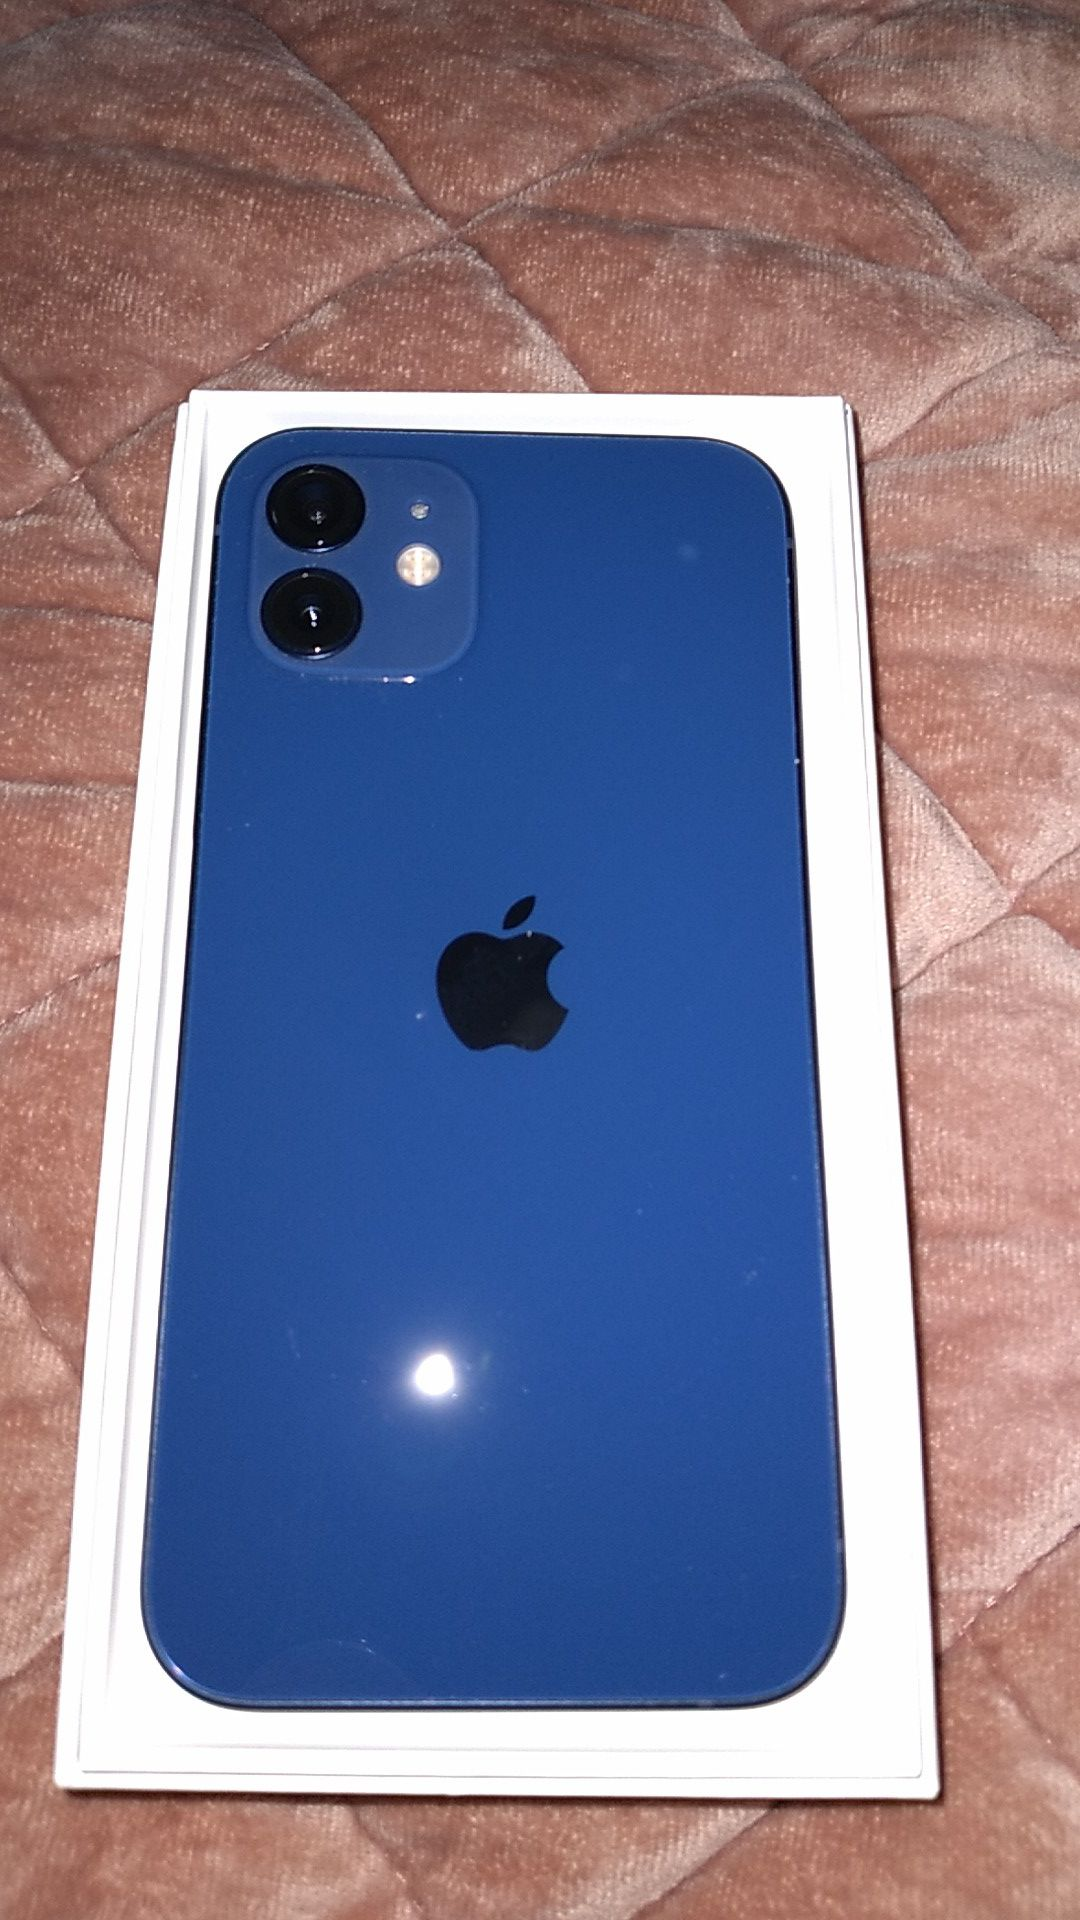 Brand new i phone 12 64 gb blue t mobil unlocked perfect condition 500 or obo